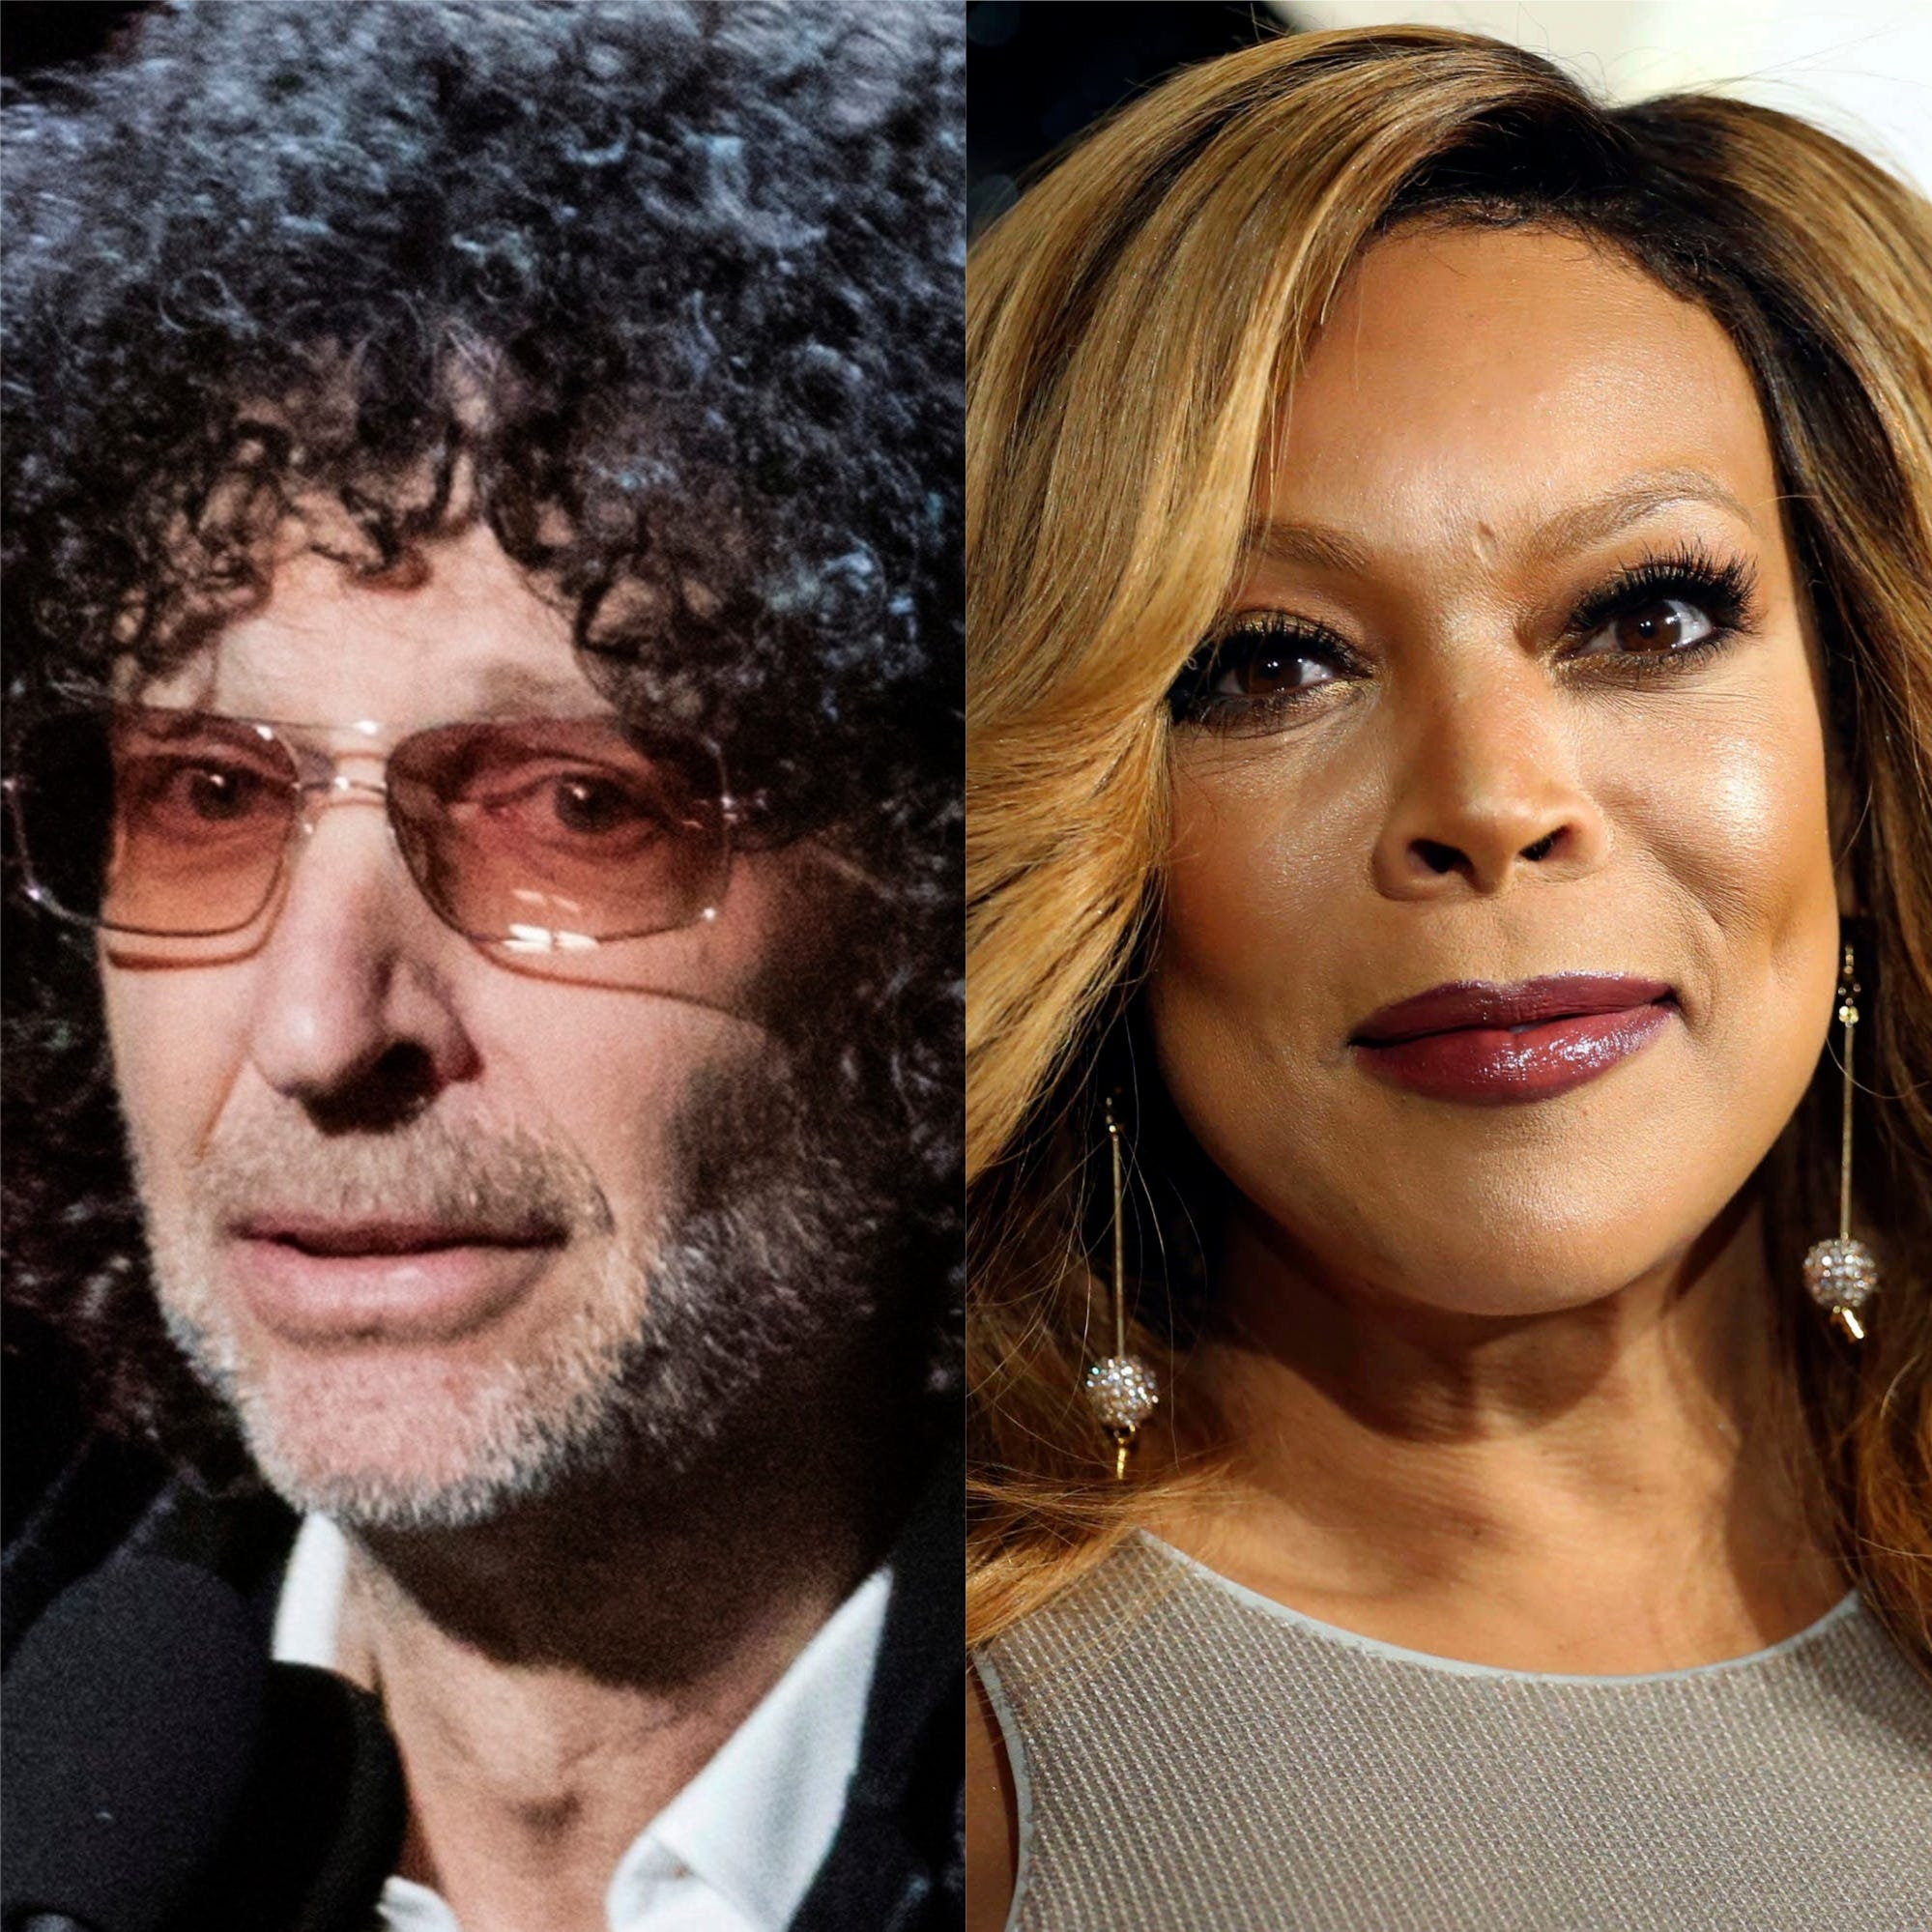 Howard Stern, left, is feuding with Wendy Williams. Stern is seen here at the 2018 Rock and Roll Hall of Fame Induction Ceremony in Cleveland.  Williams is pictured during the 2014 Soul Train Awards in Las Vegas.